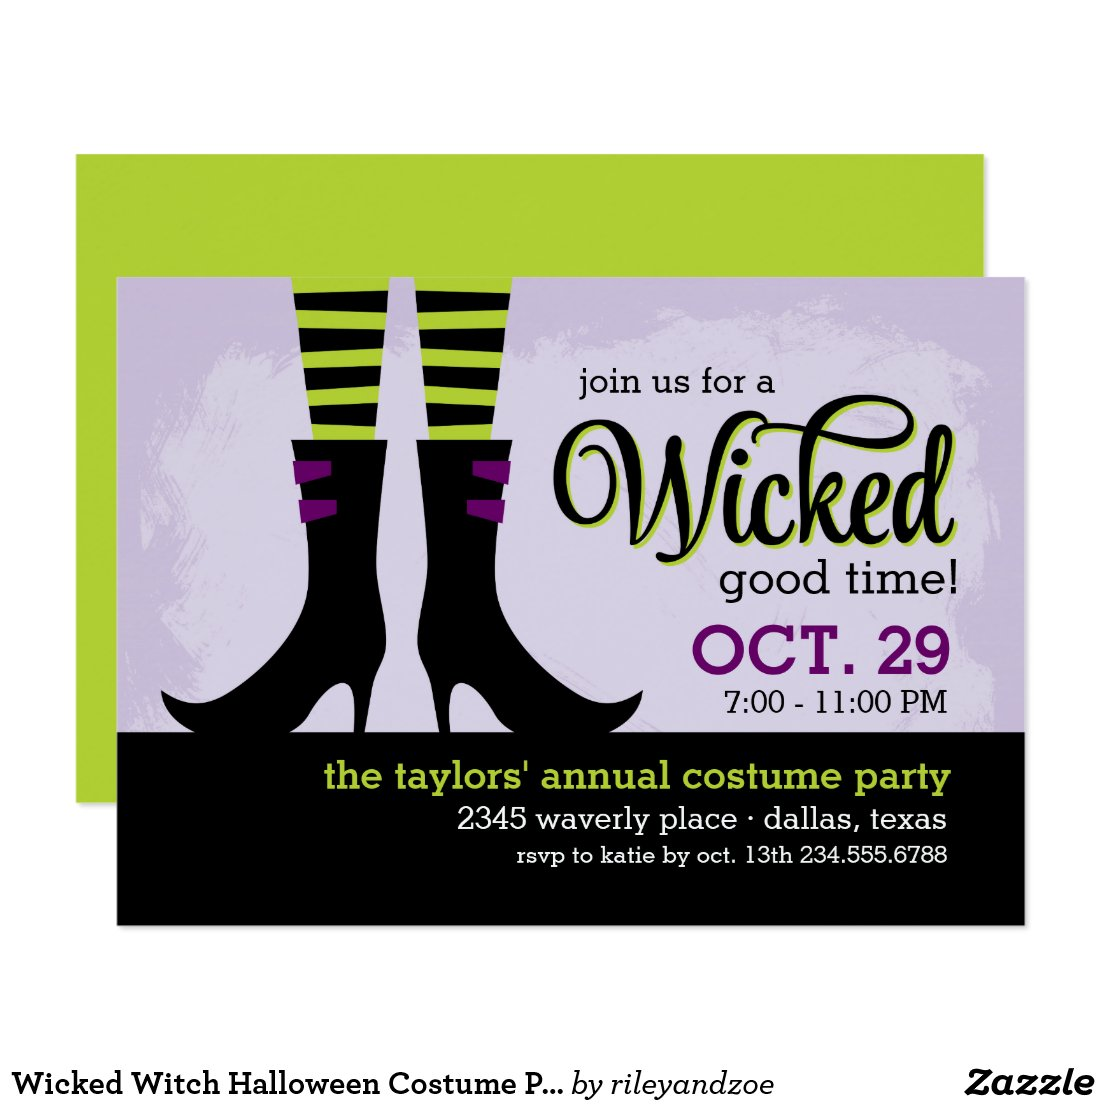 Wicked Witch Halloween Costume Party Invitation